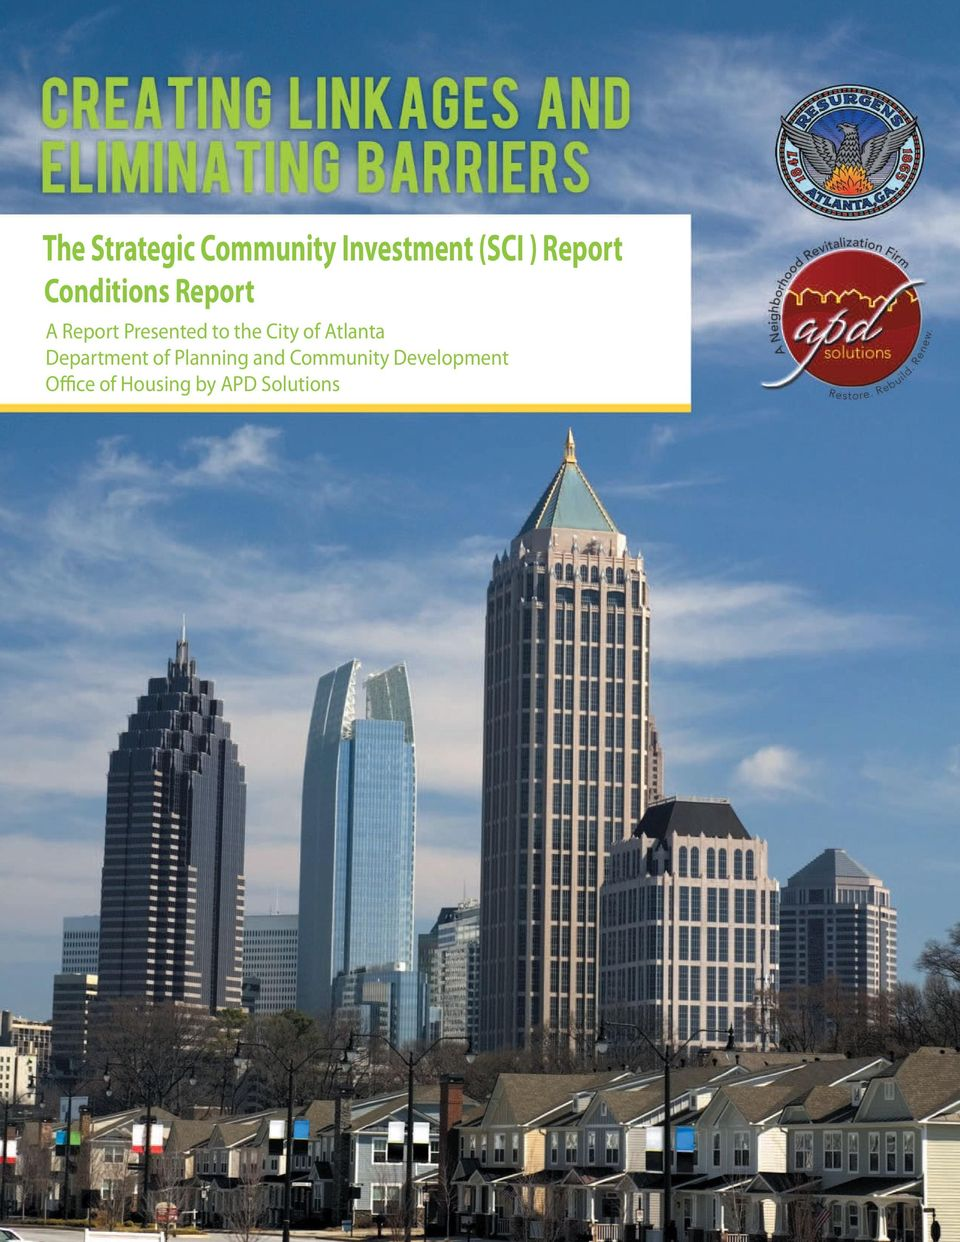 the City of Atlanta Department of Planning and